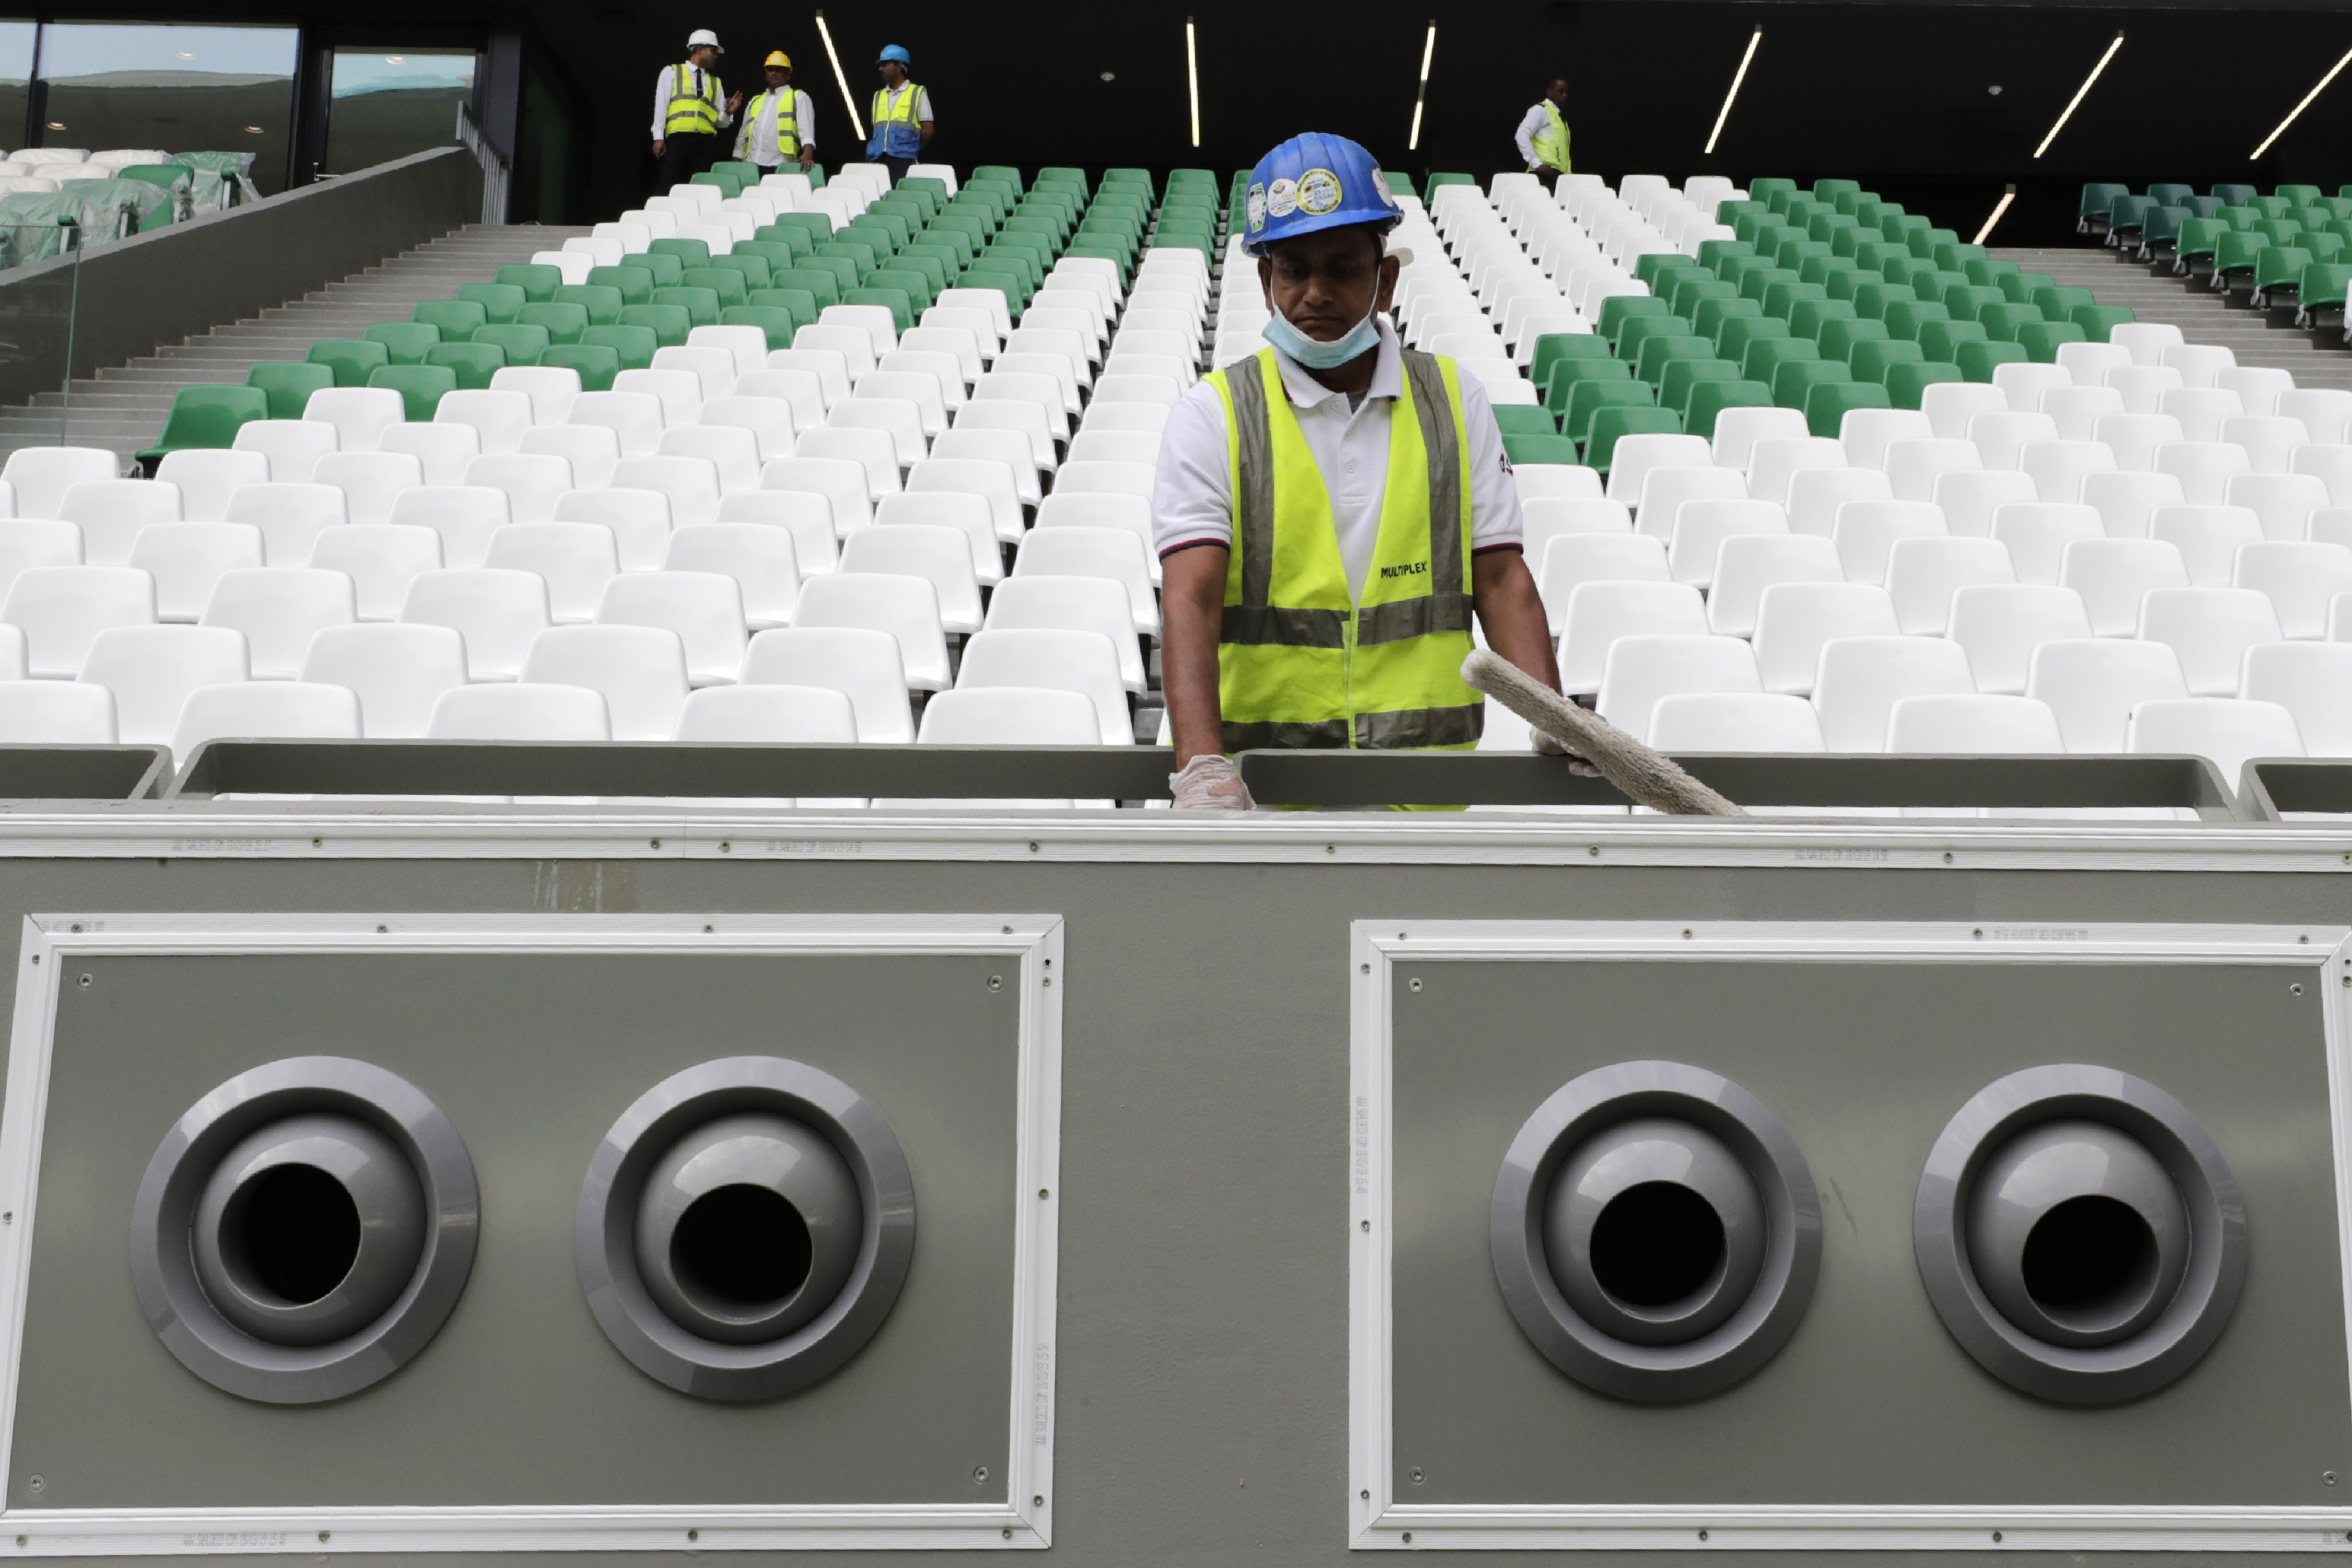 A worker cleans over a giant air conditioning at the Qatar Education Stadium, one of the 2022 World Cup stadiums, an open cooled stadium with a 45,350-seat capacity in Doha, Qatar, Sunday, Dec. 15, 2019. Qatar Education Stadium it isan open cooled stadium with a 45,350-seat capacity and is located in the middle of several university campuses at the Qatar Foundation's Education City in Doha. (AP Photo/Hassan Ammar)